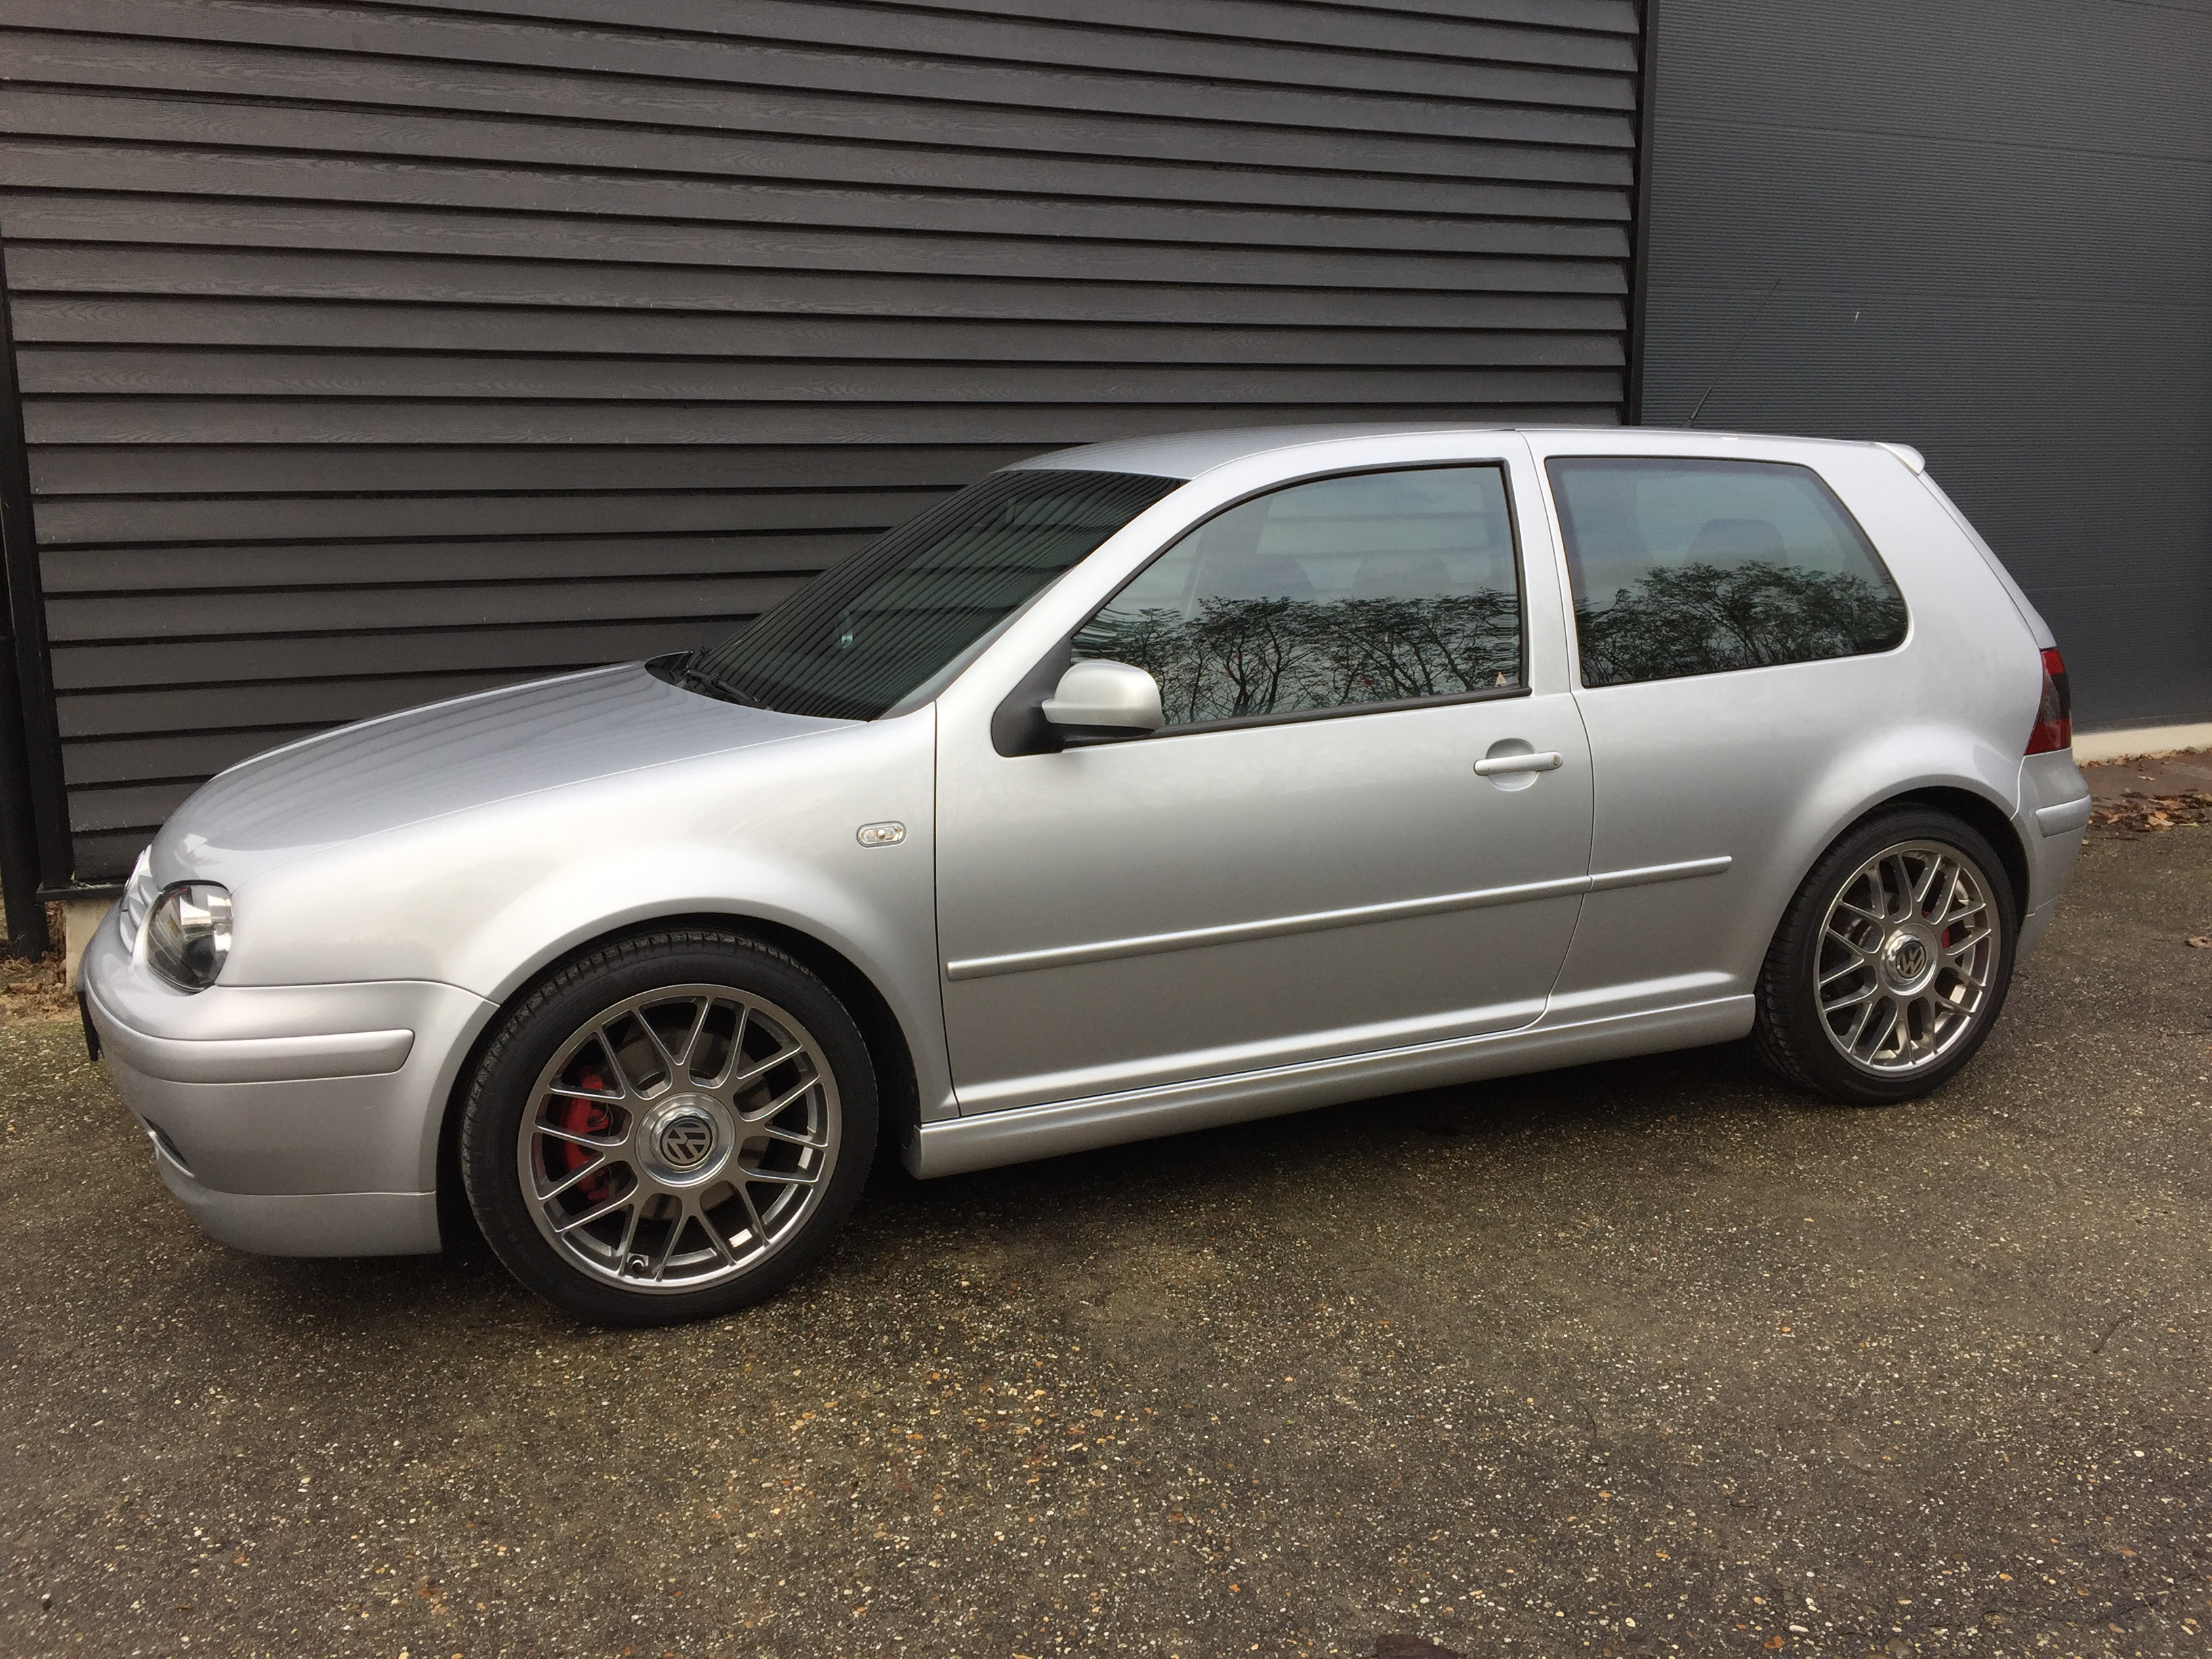 Vw Golf Iv Gti 18 Turbo Edition 25 Youngtimer